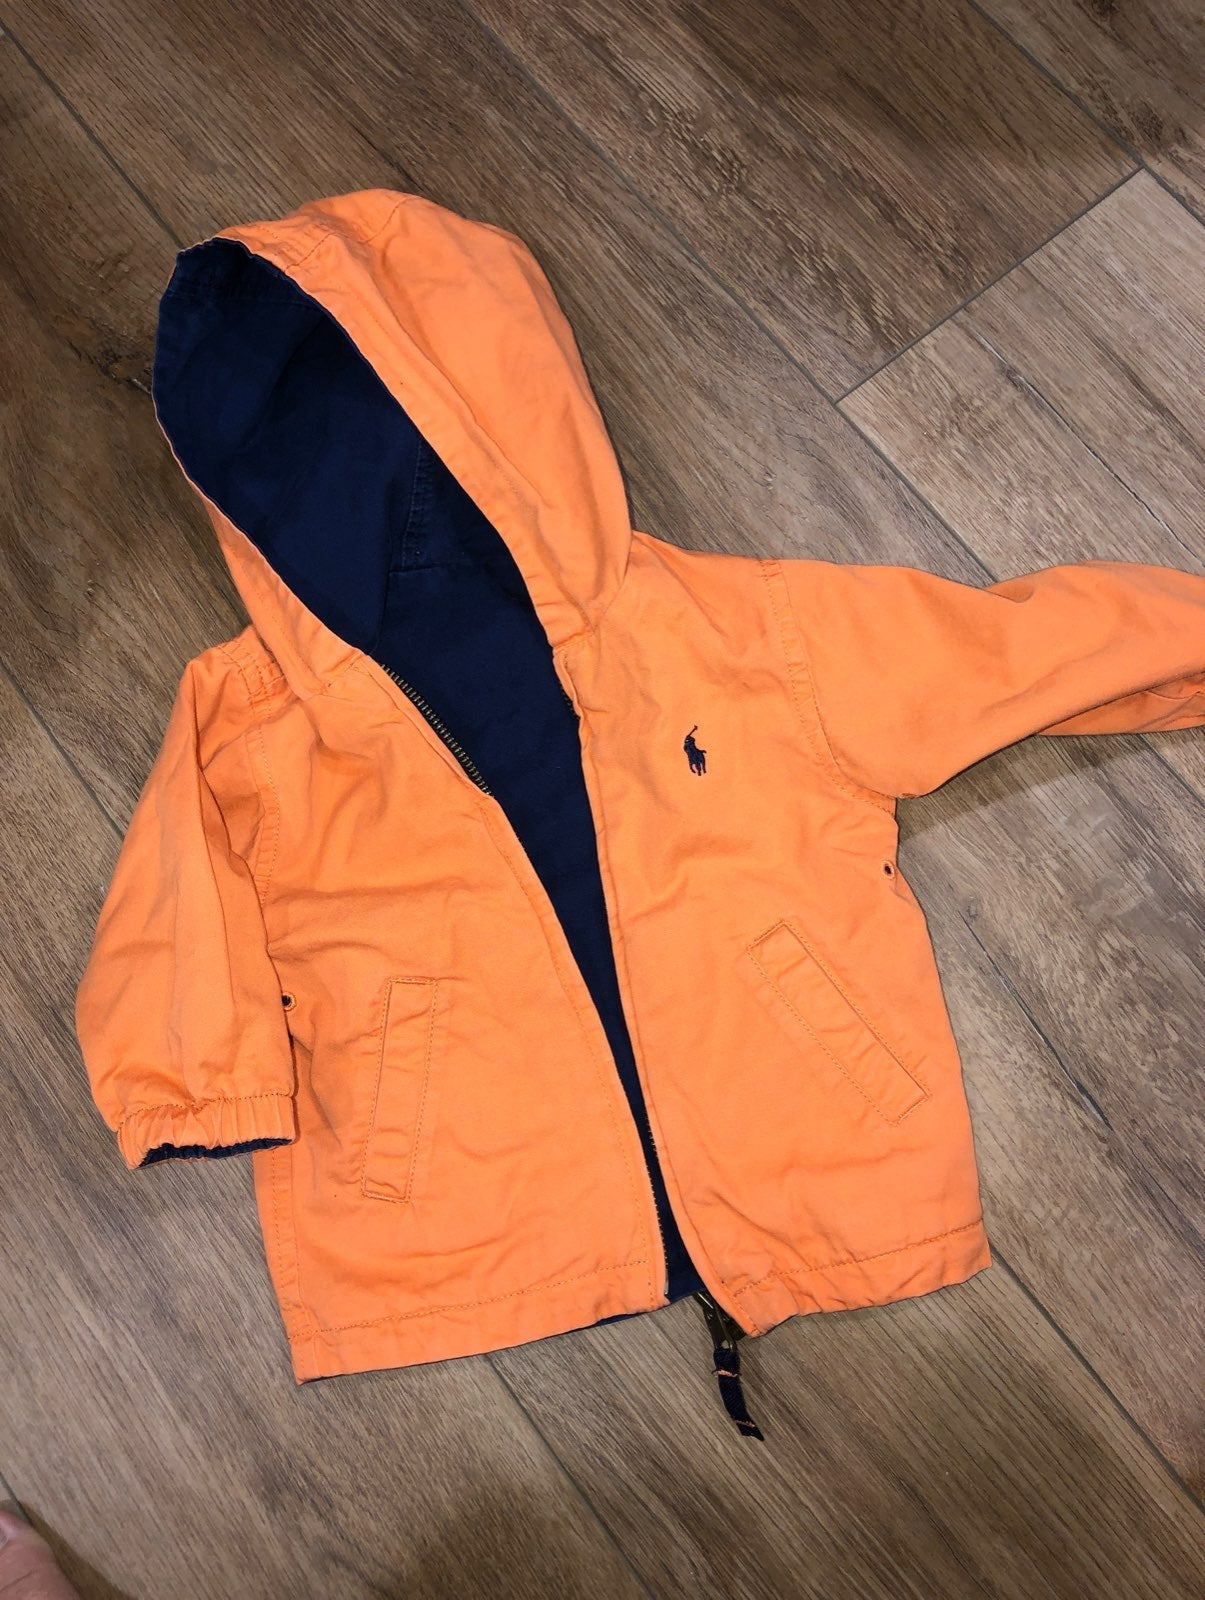 Polo jacket reversible baby boys 9 month